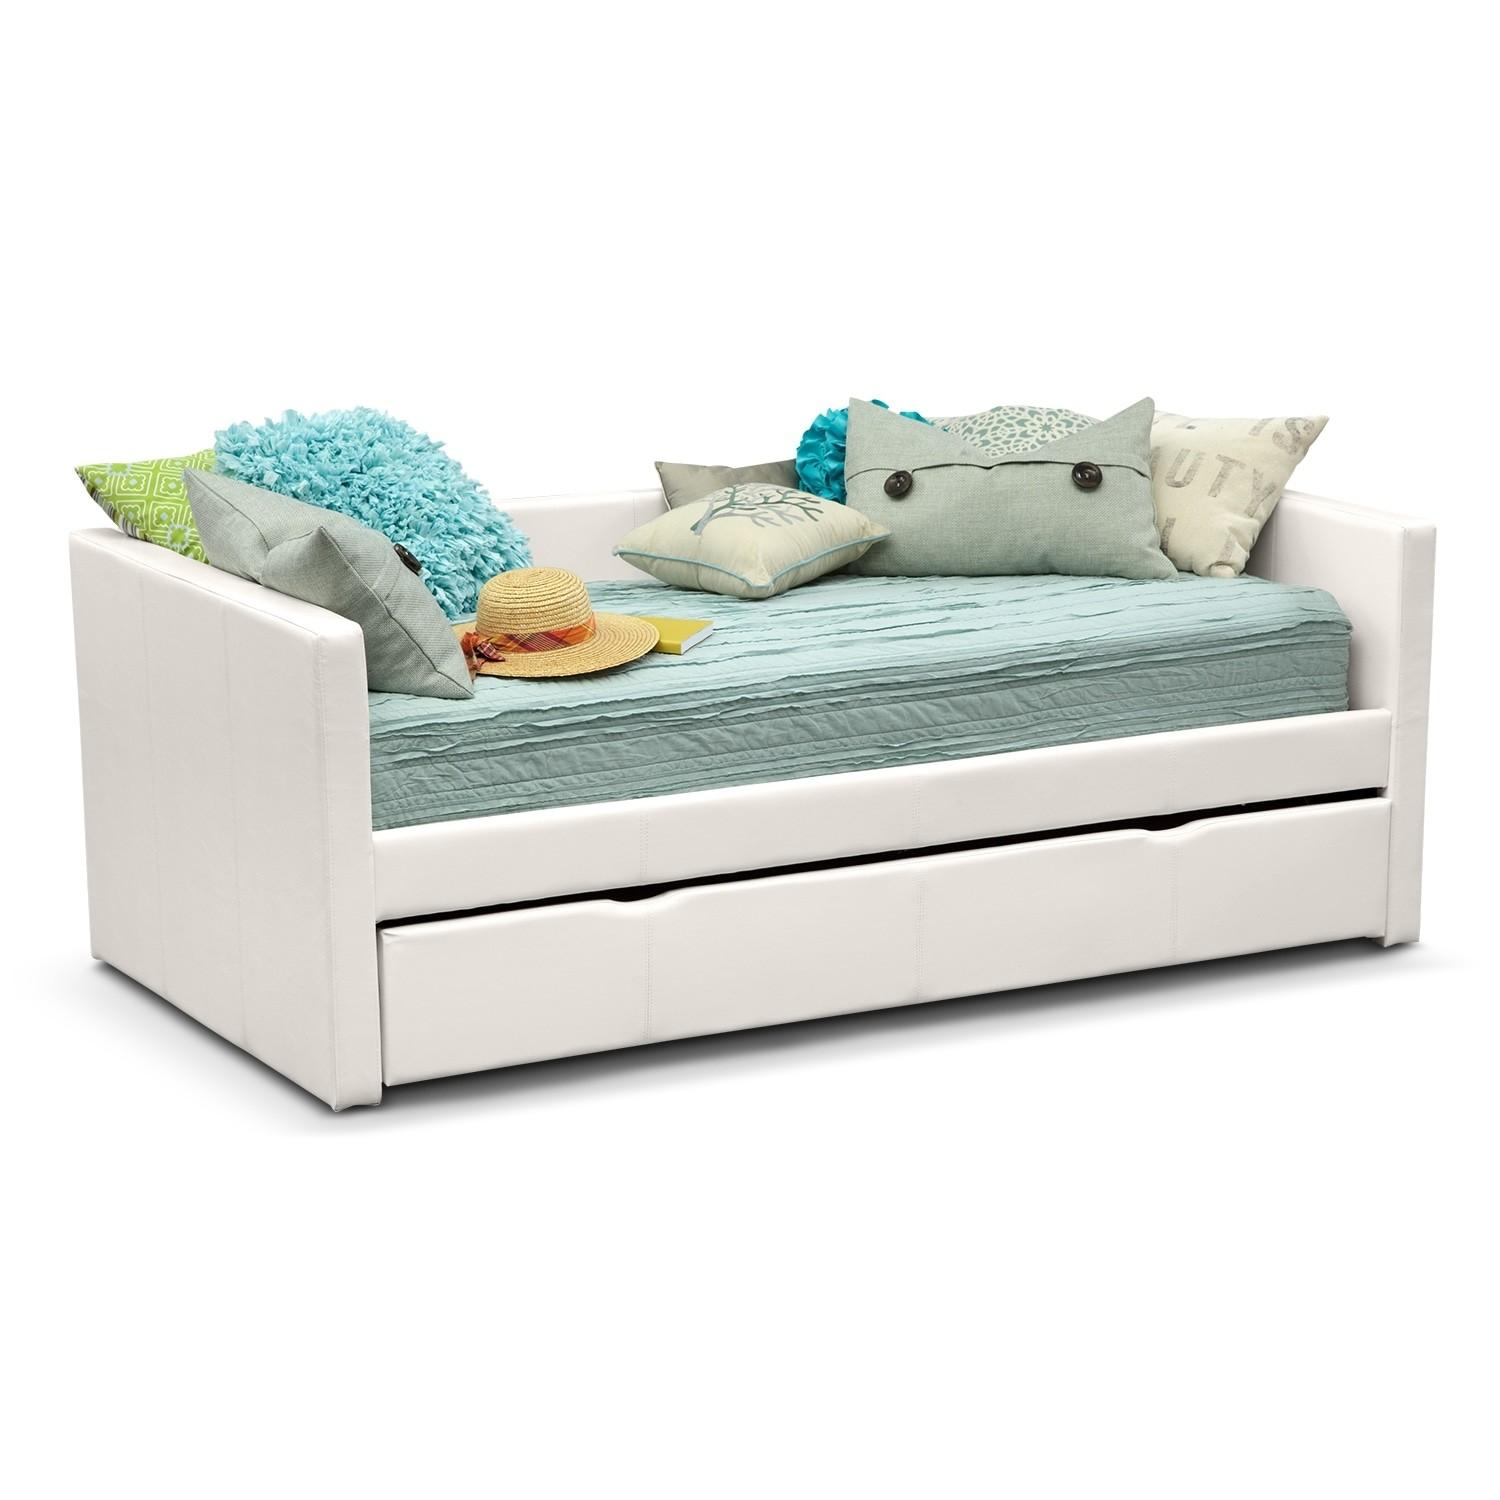 Carey Twin Daybed Trundle White Value City Furniture